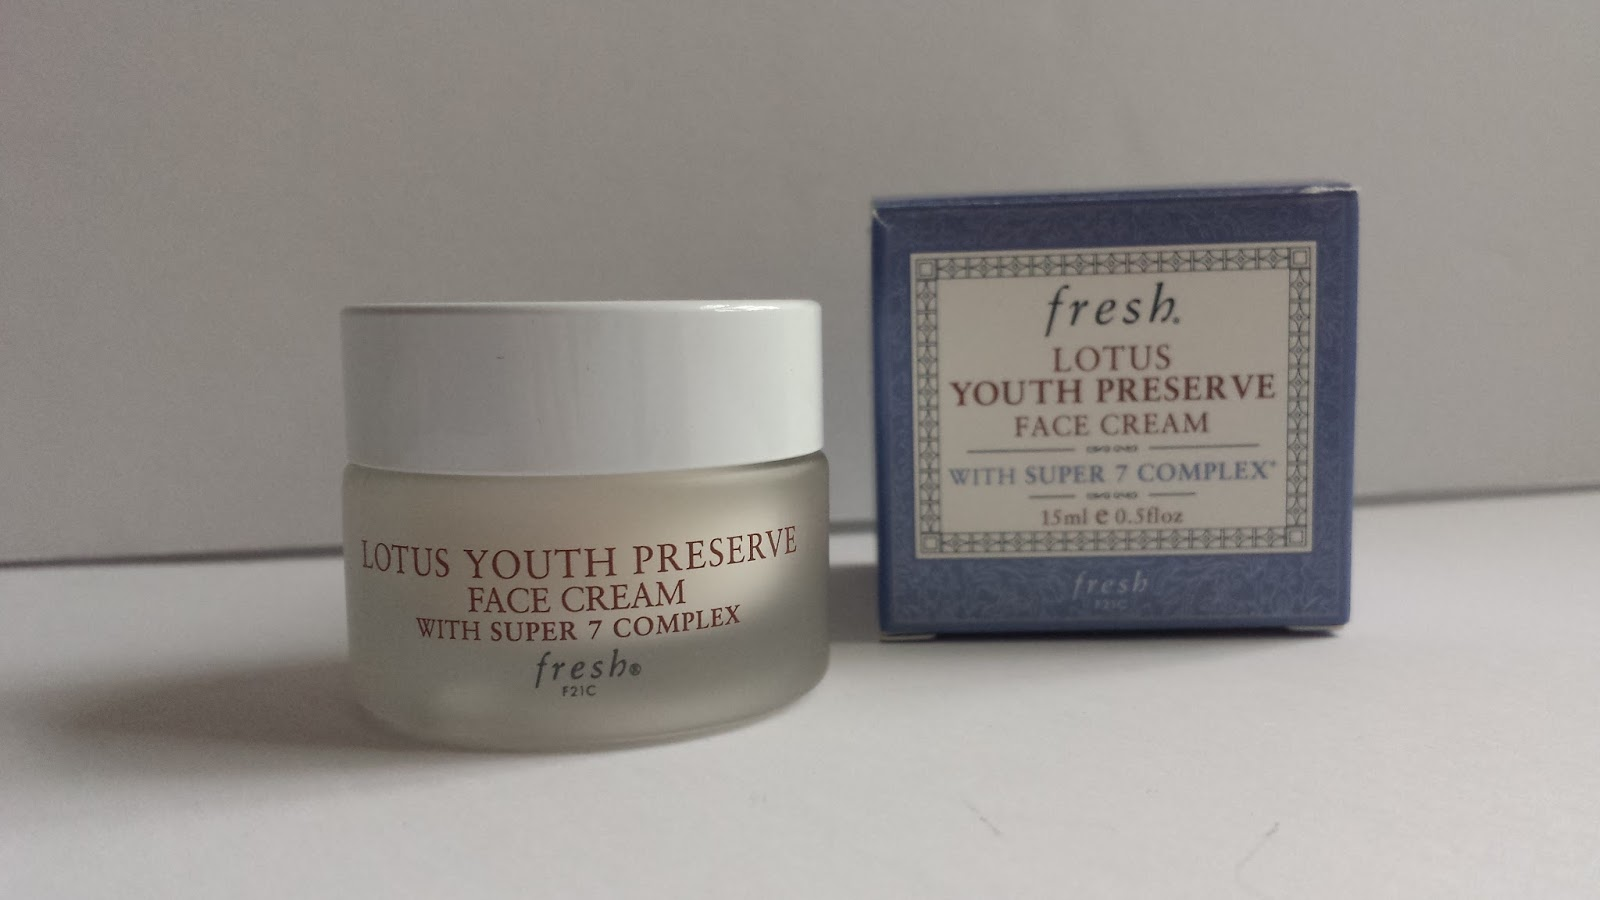 fresh lotus youth preserve face cream review